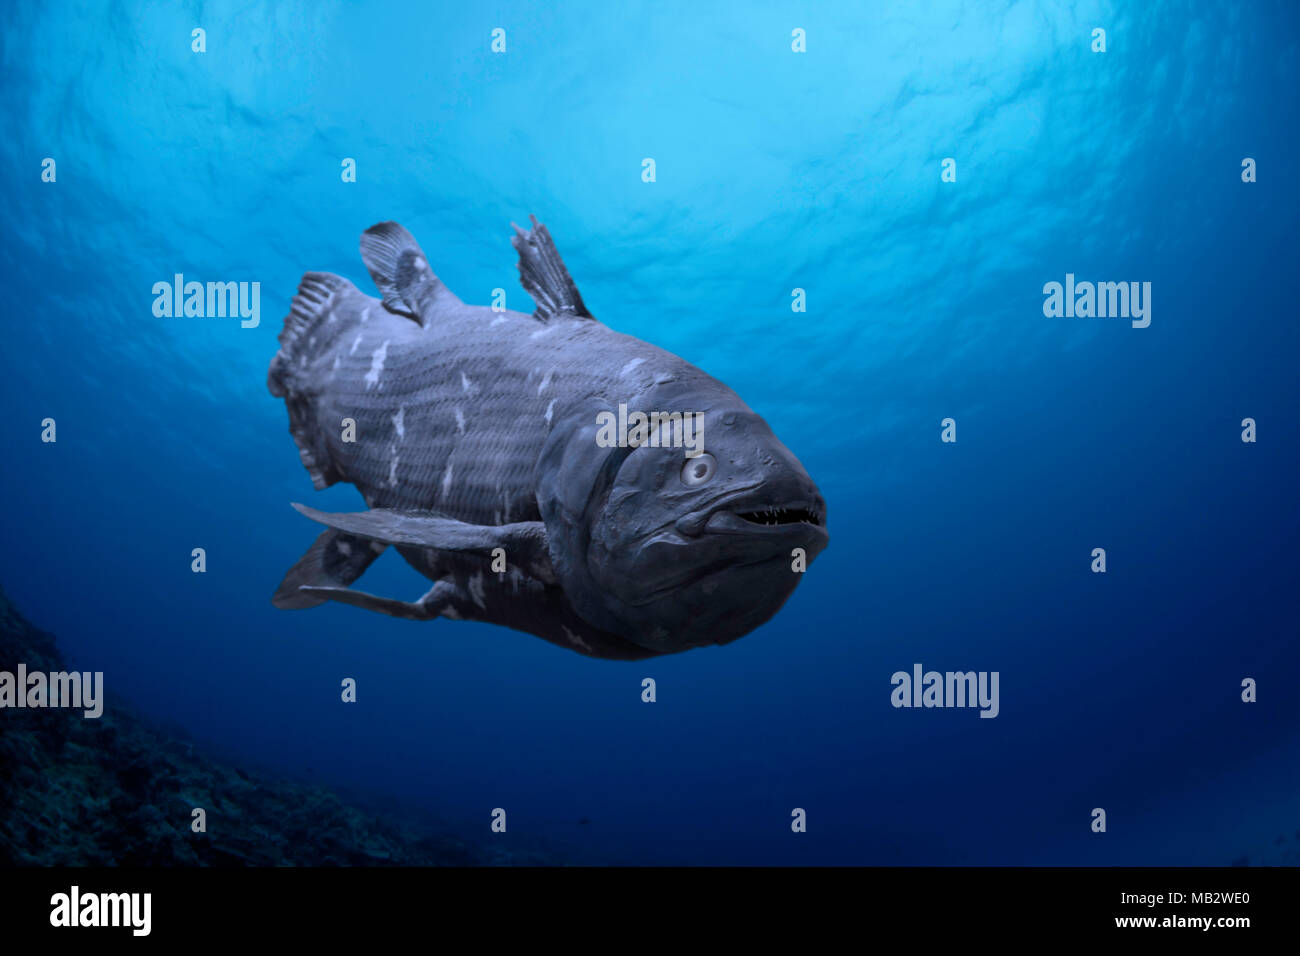 This is a digital illustration of a fish that was believed to have become extinct during the Cretaceous Period.  Specimens of Coelacanths, Latimeria c - Stock Image